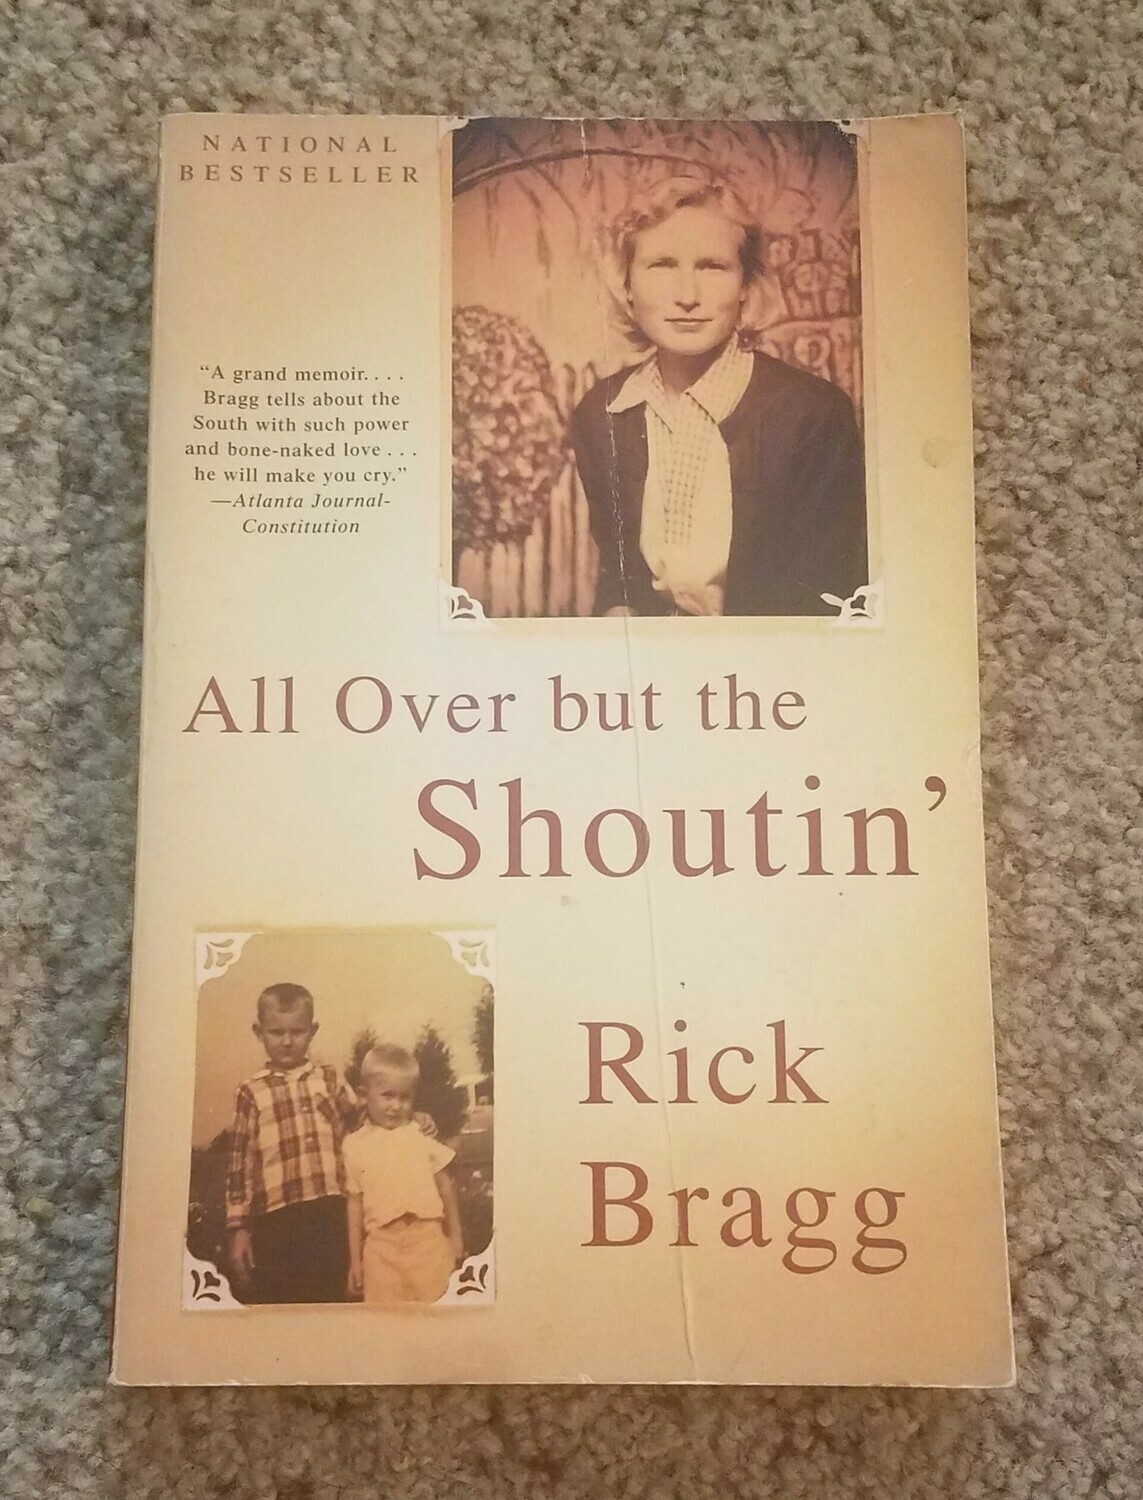 All Over but the Shoutin' by Rick Bragg